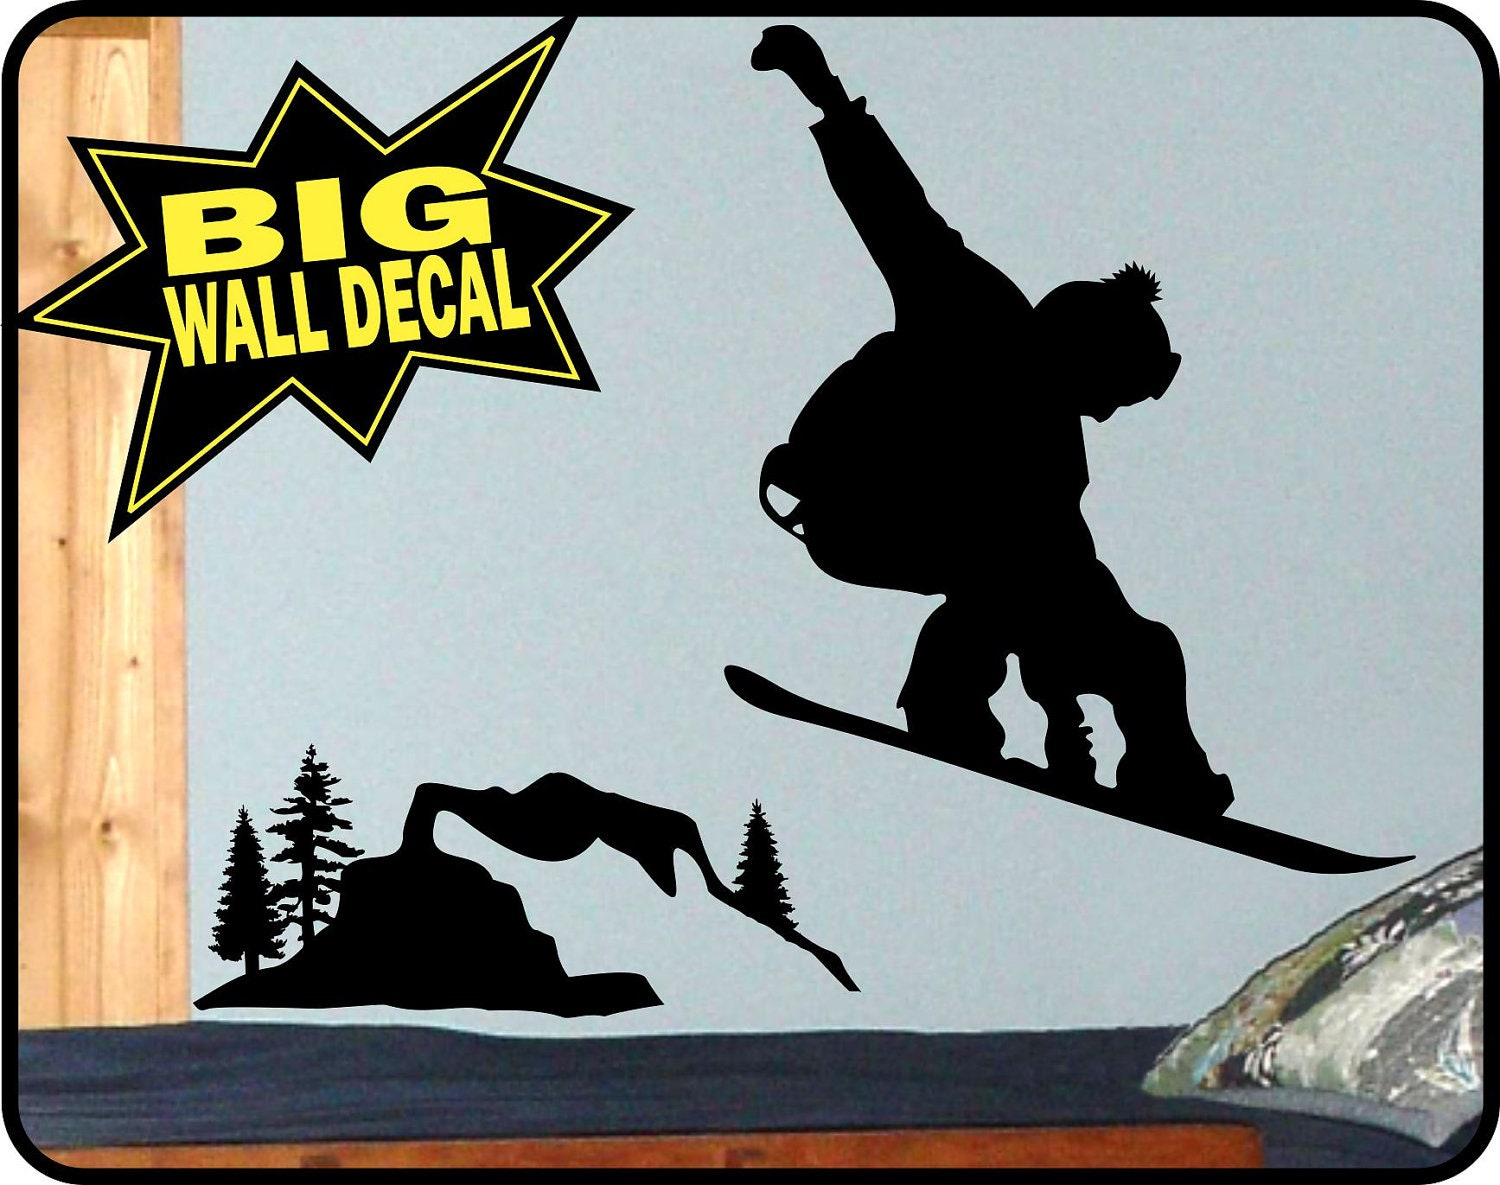 Snowboard wall mural todosobreelamorfo snowboard wall mural snowboard wall decal sticker mural for bedroom wall burton amipublicfo Image collections